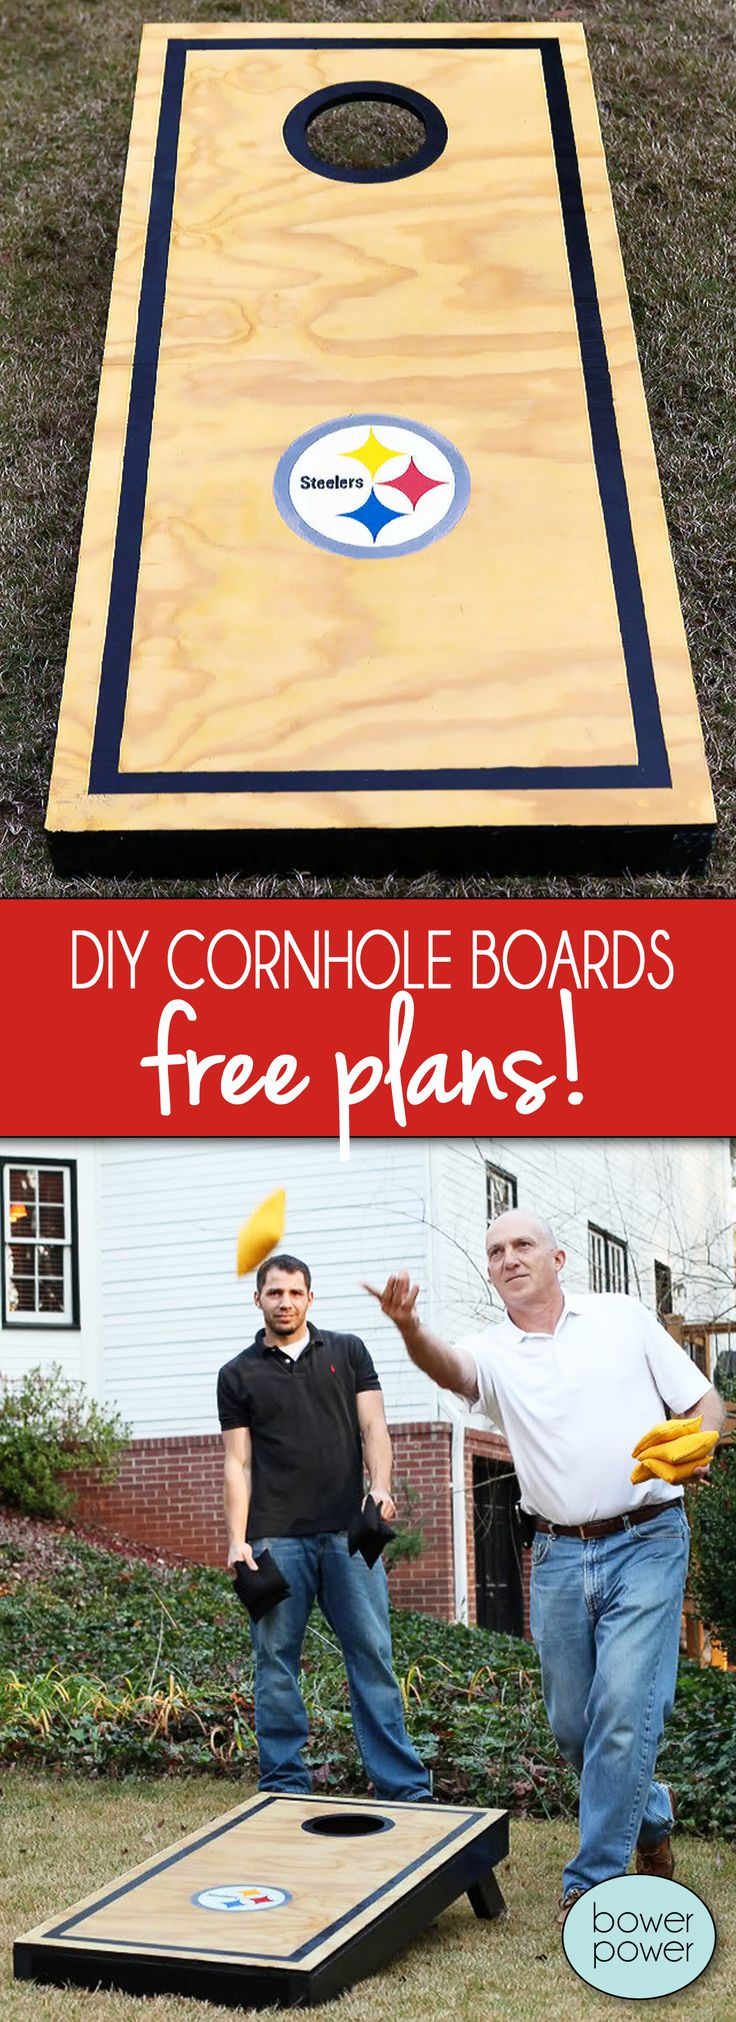 DIY Cornhole, great gift idea for guys! - Bower Power